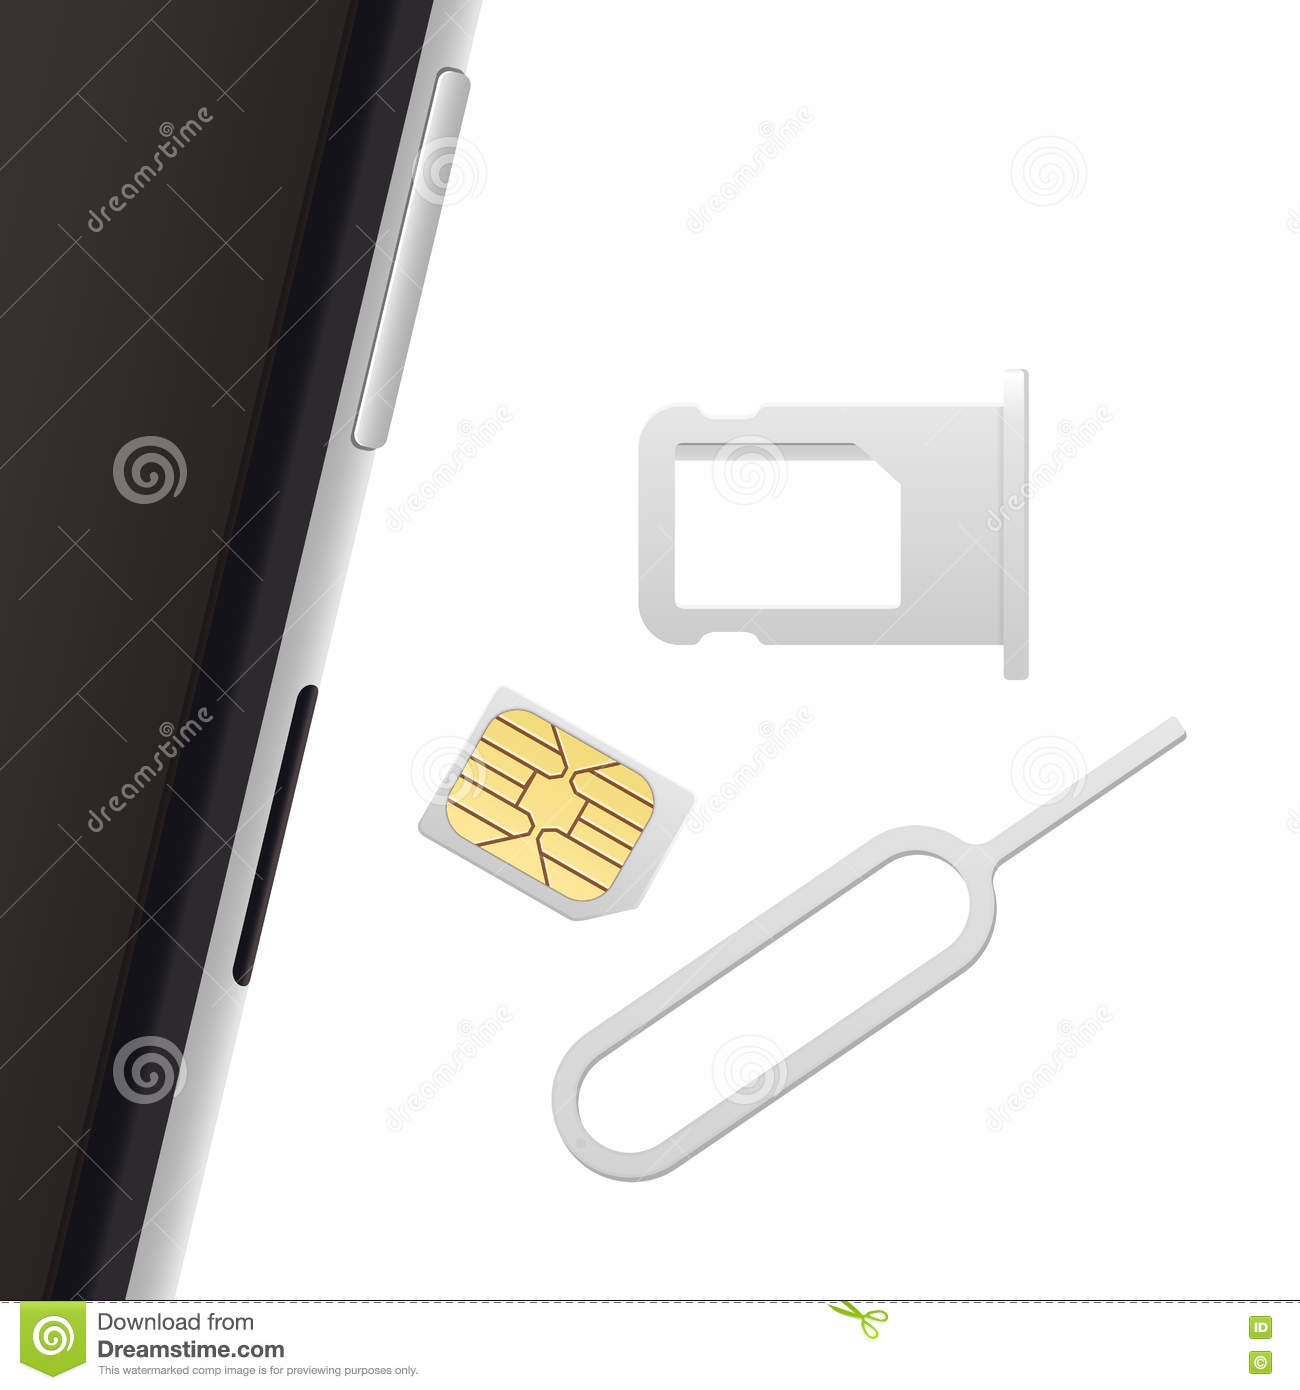 Realistic 3d Microchip Isolated On White Cartoon Vector